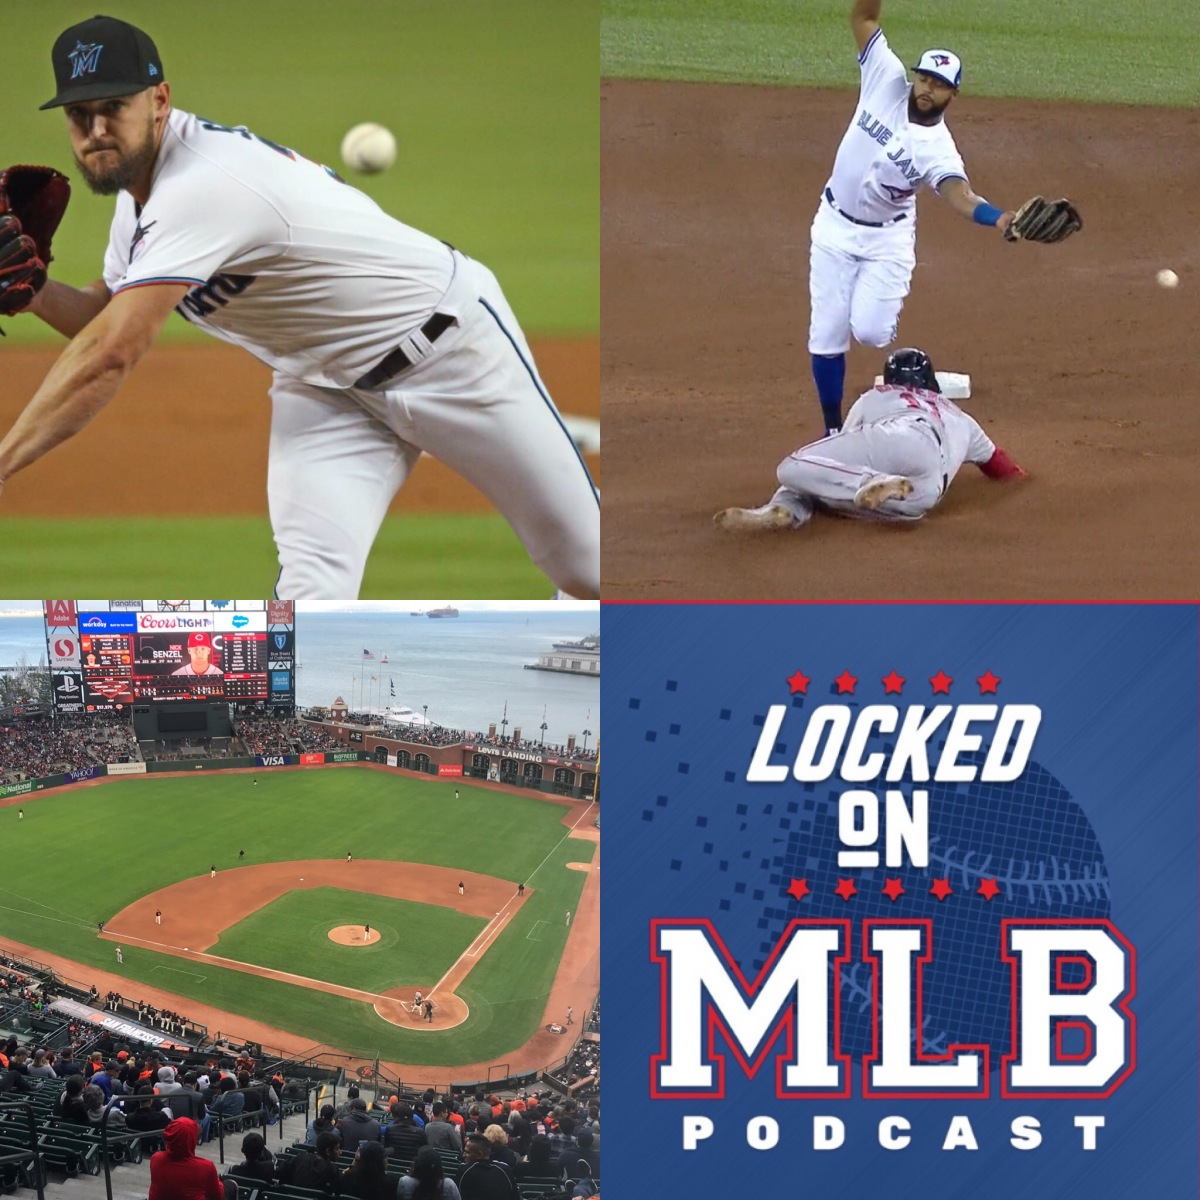 Stupid Orioles Loss and Even More Stupid Blackout Rules - Locked On MLB for May 21, 2019